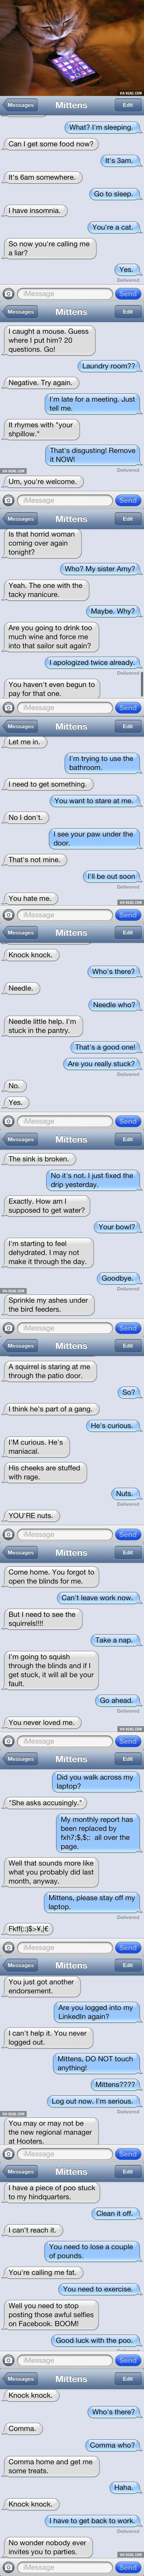 Text Messages From A Cat. Made me laugh out loud at work.